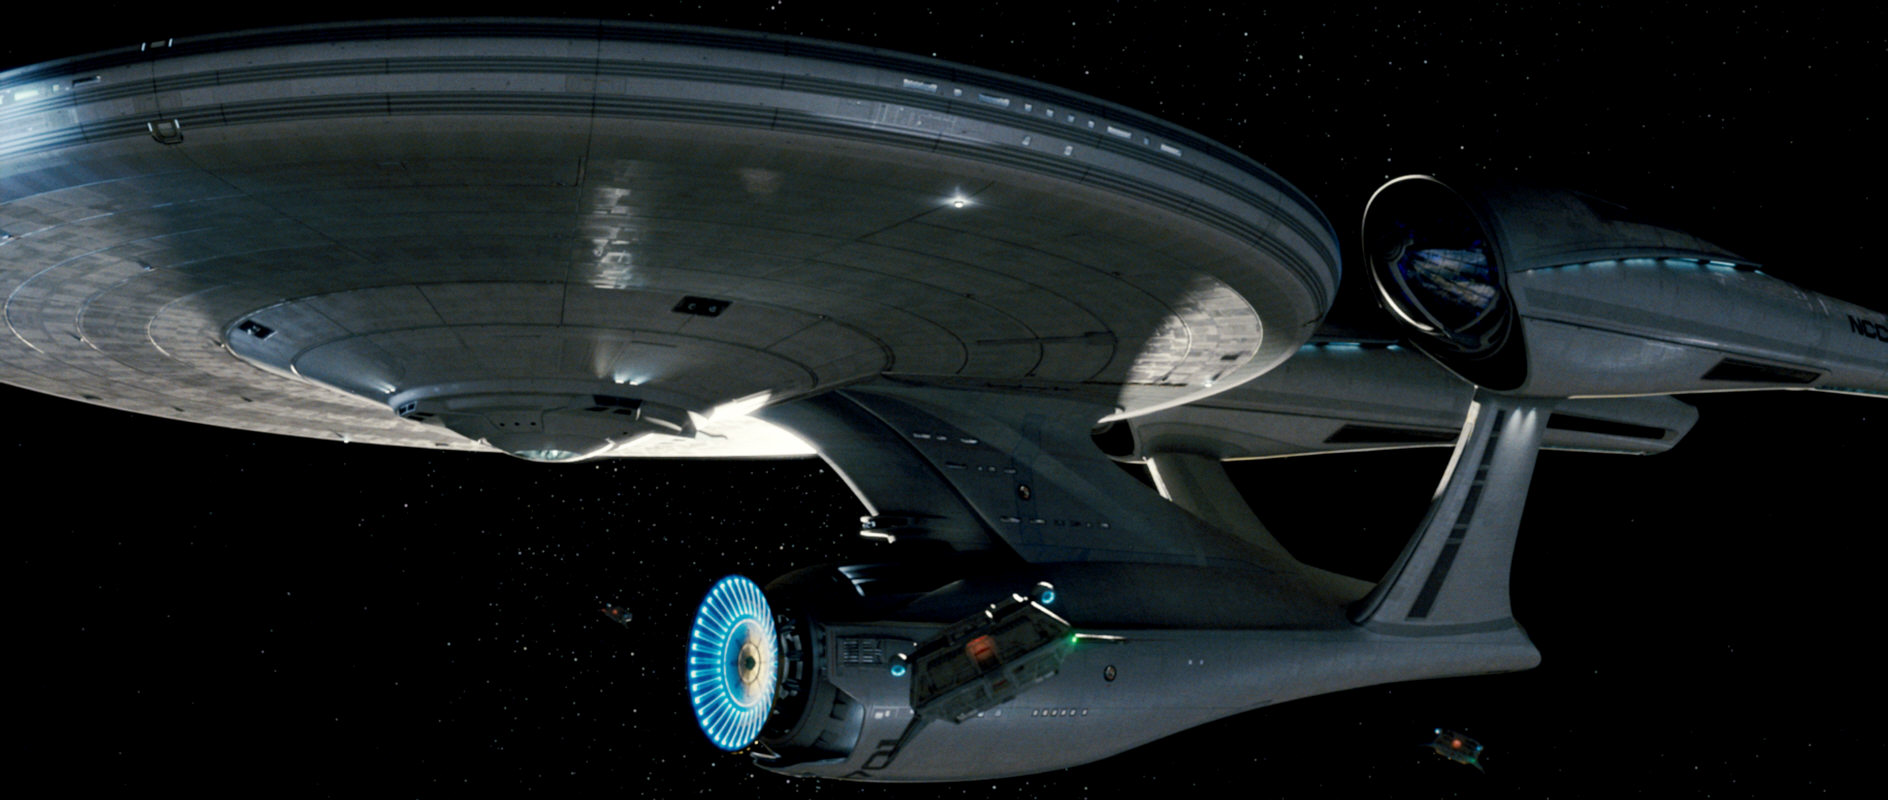 new enterprise Enterprise is hit with a rather intense anomaly refusing to leave an injured t'pol behind, archer is struck by the anomaly, leaving his brain infected with parasites.